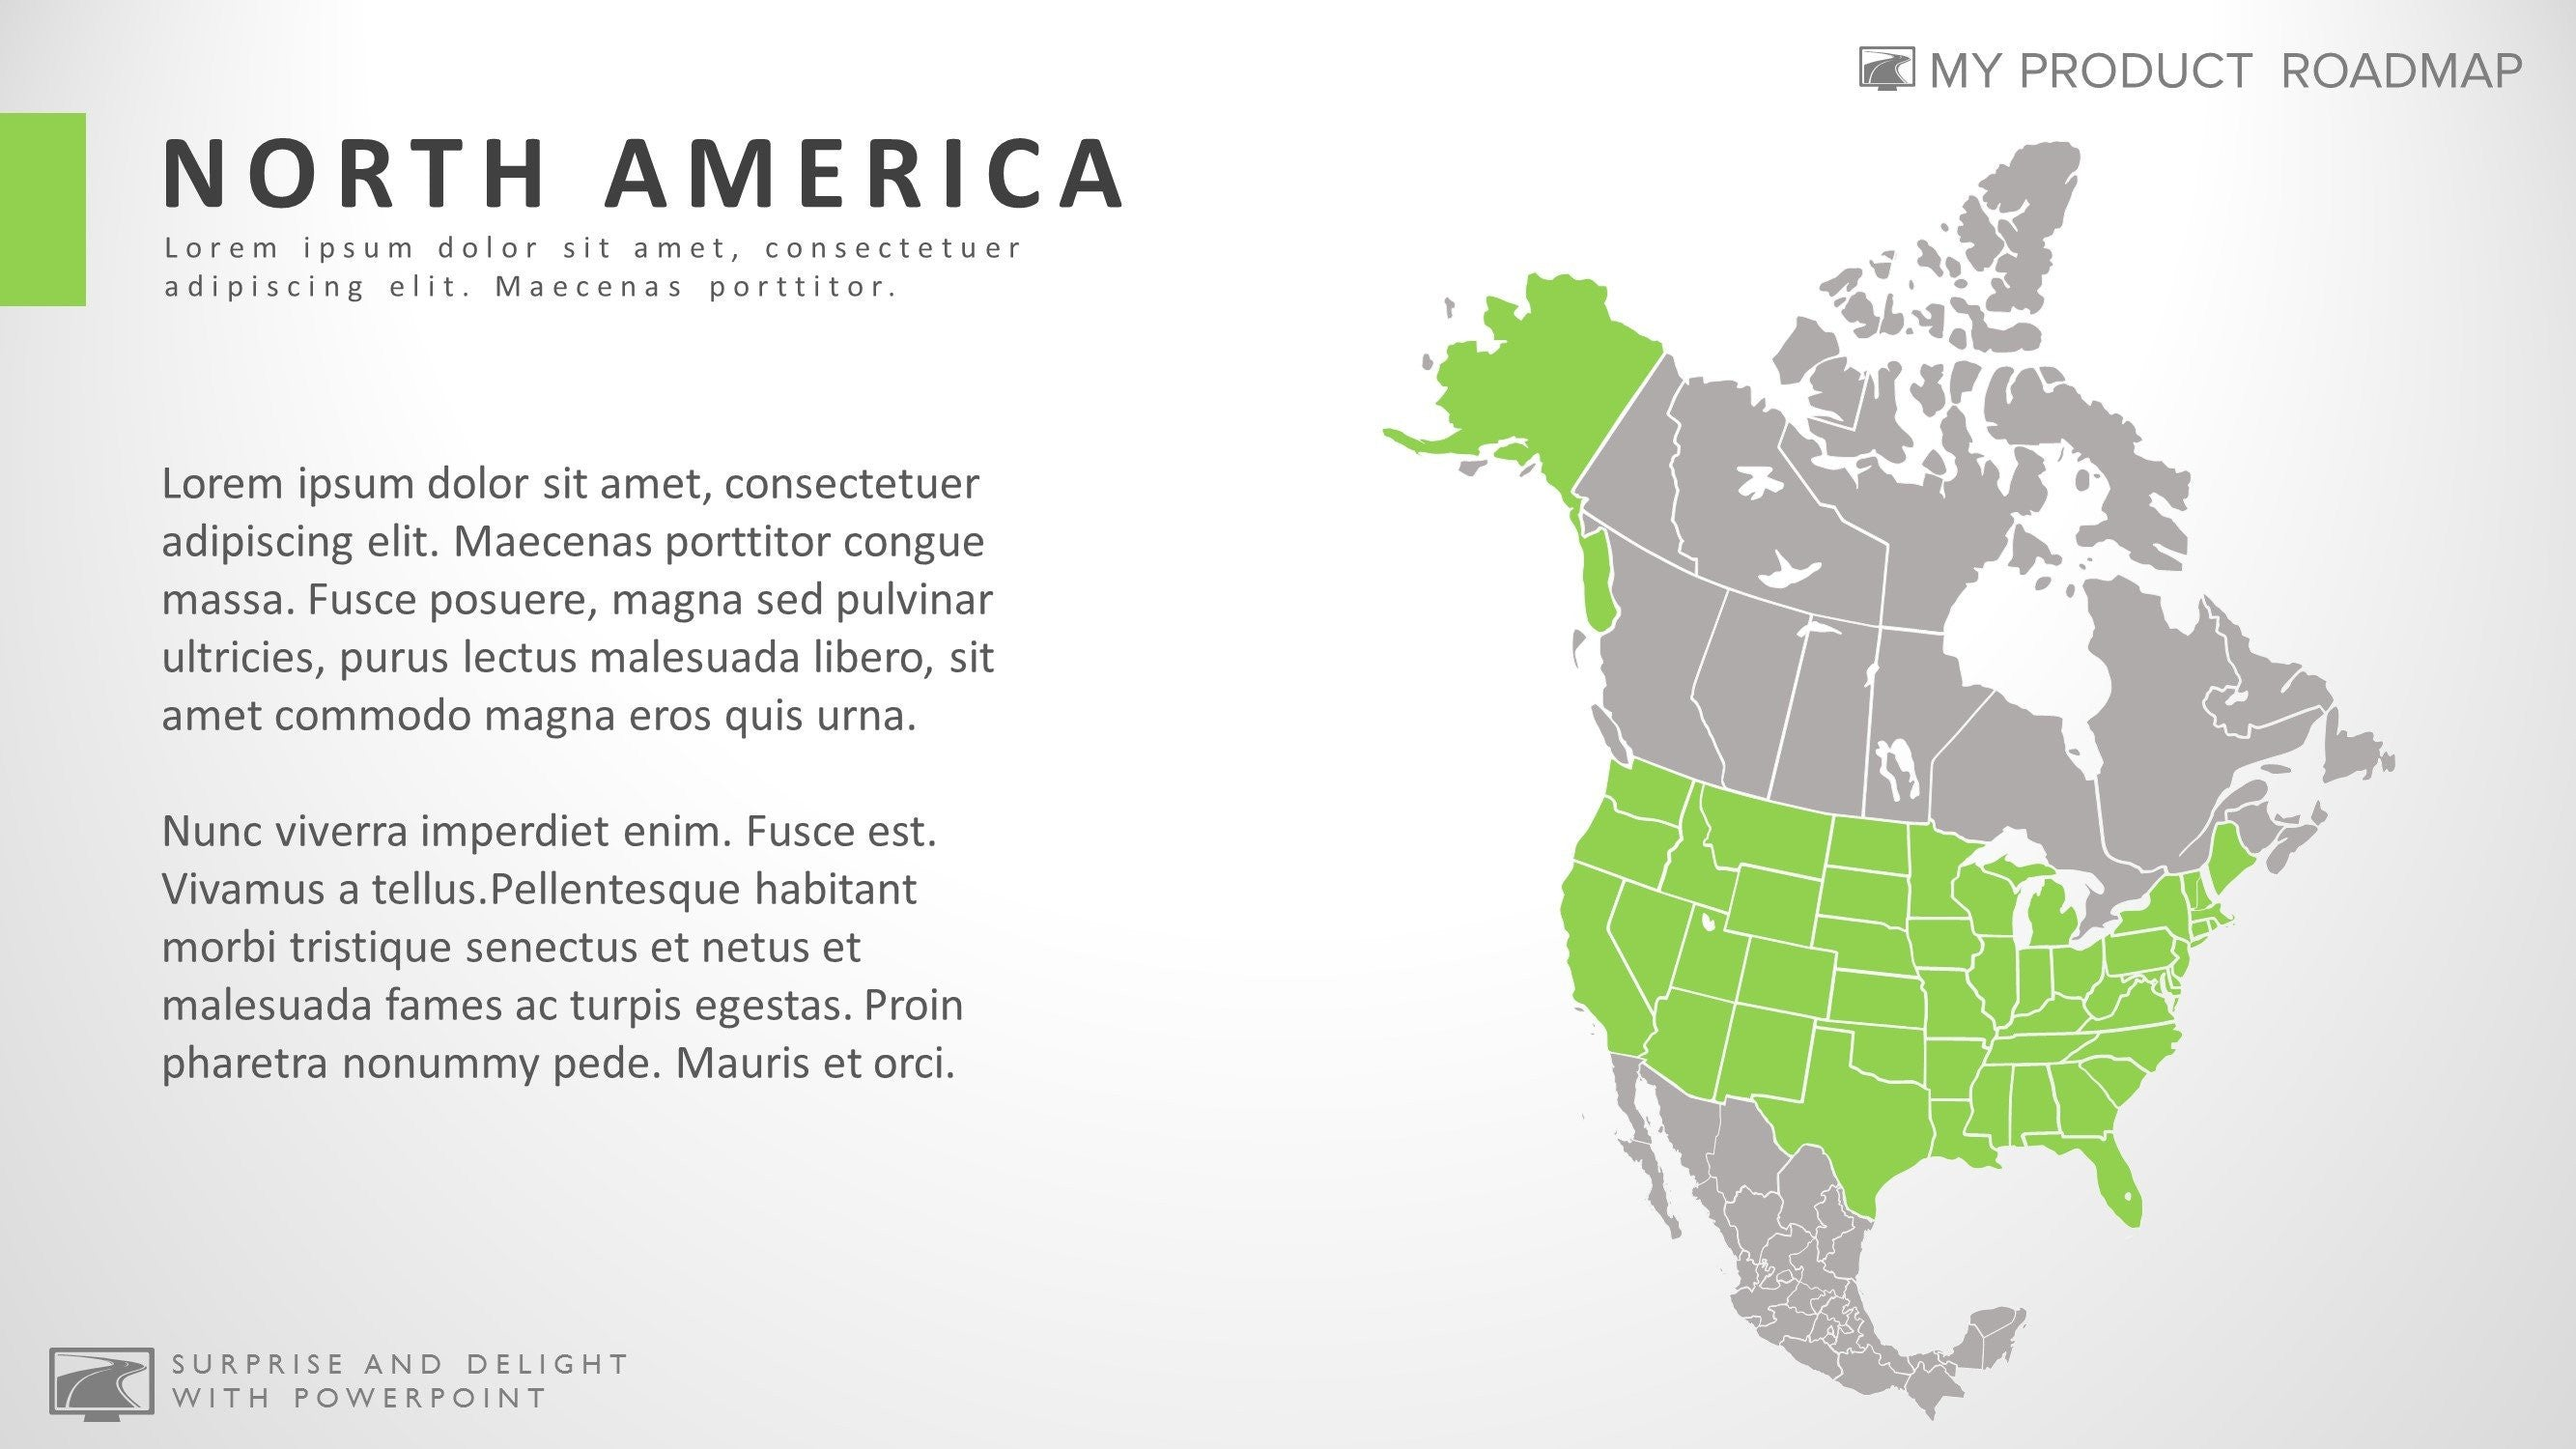 North america fancy powerpoint map smartart presentation design gumiabroncs